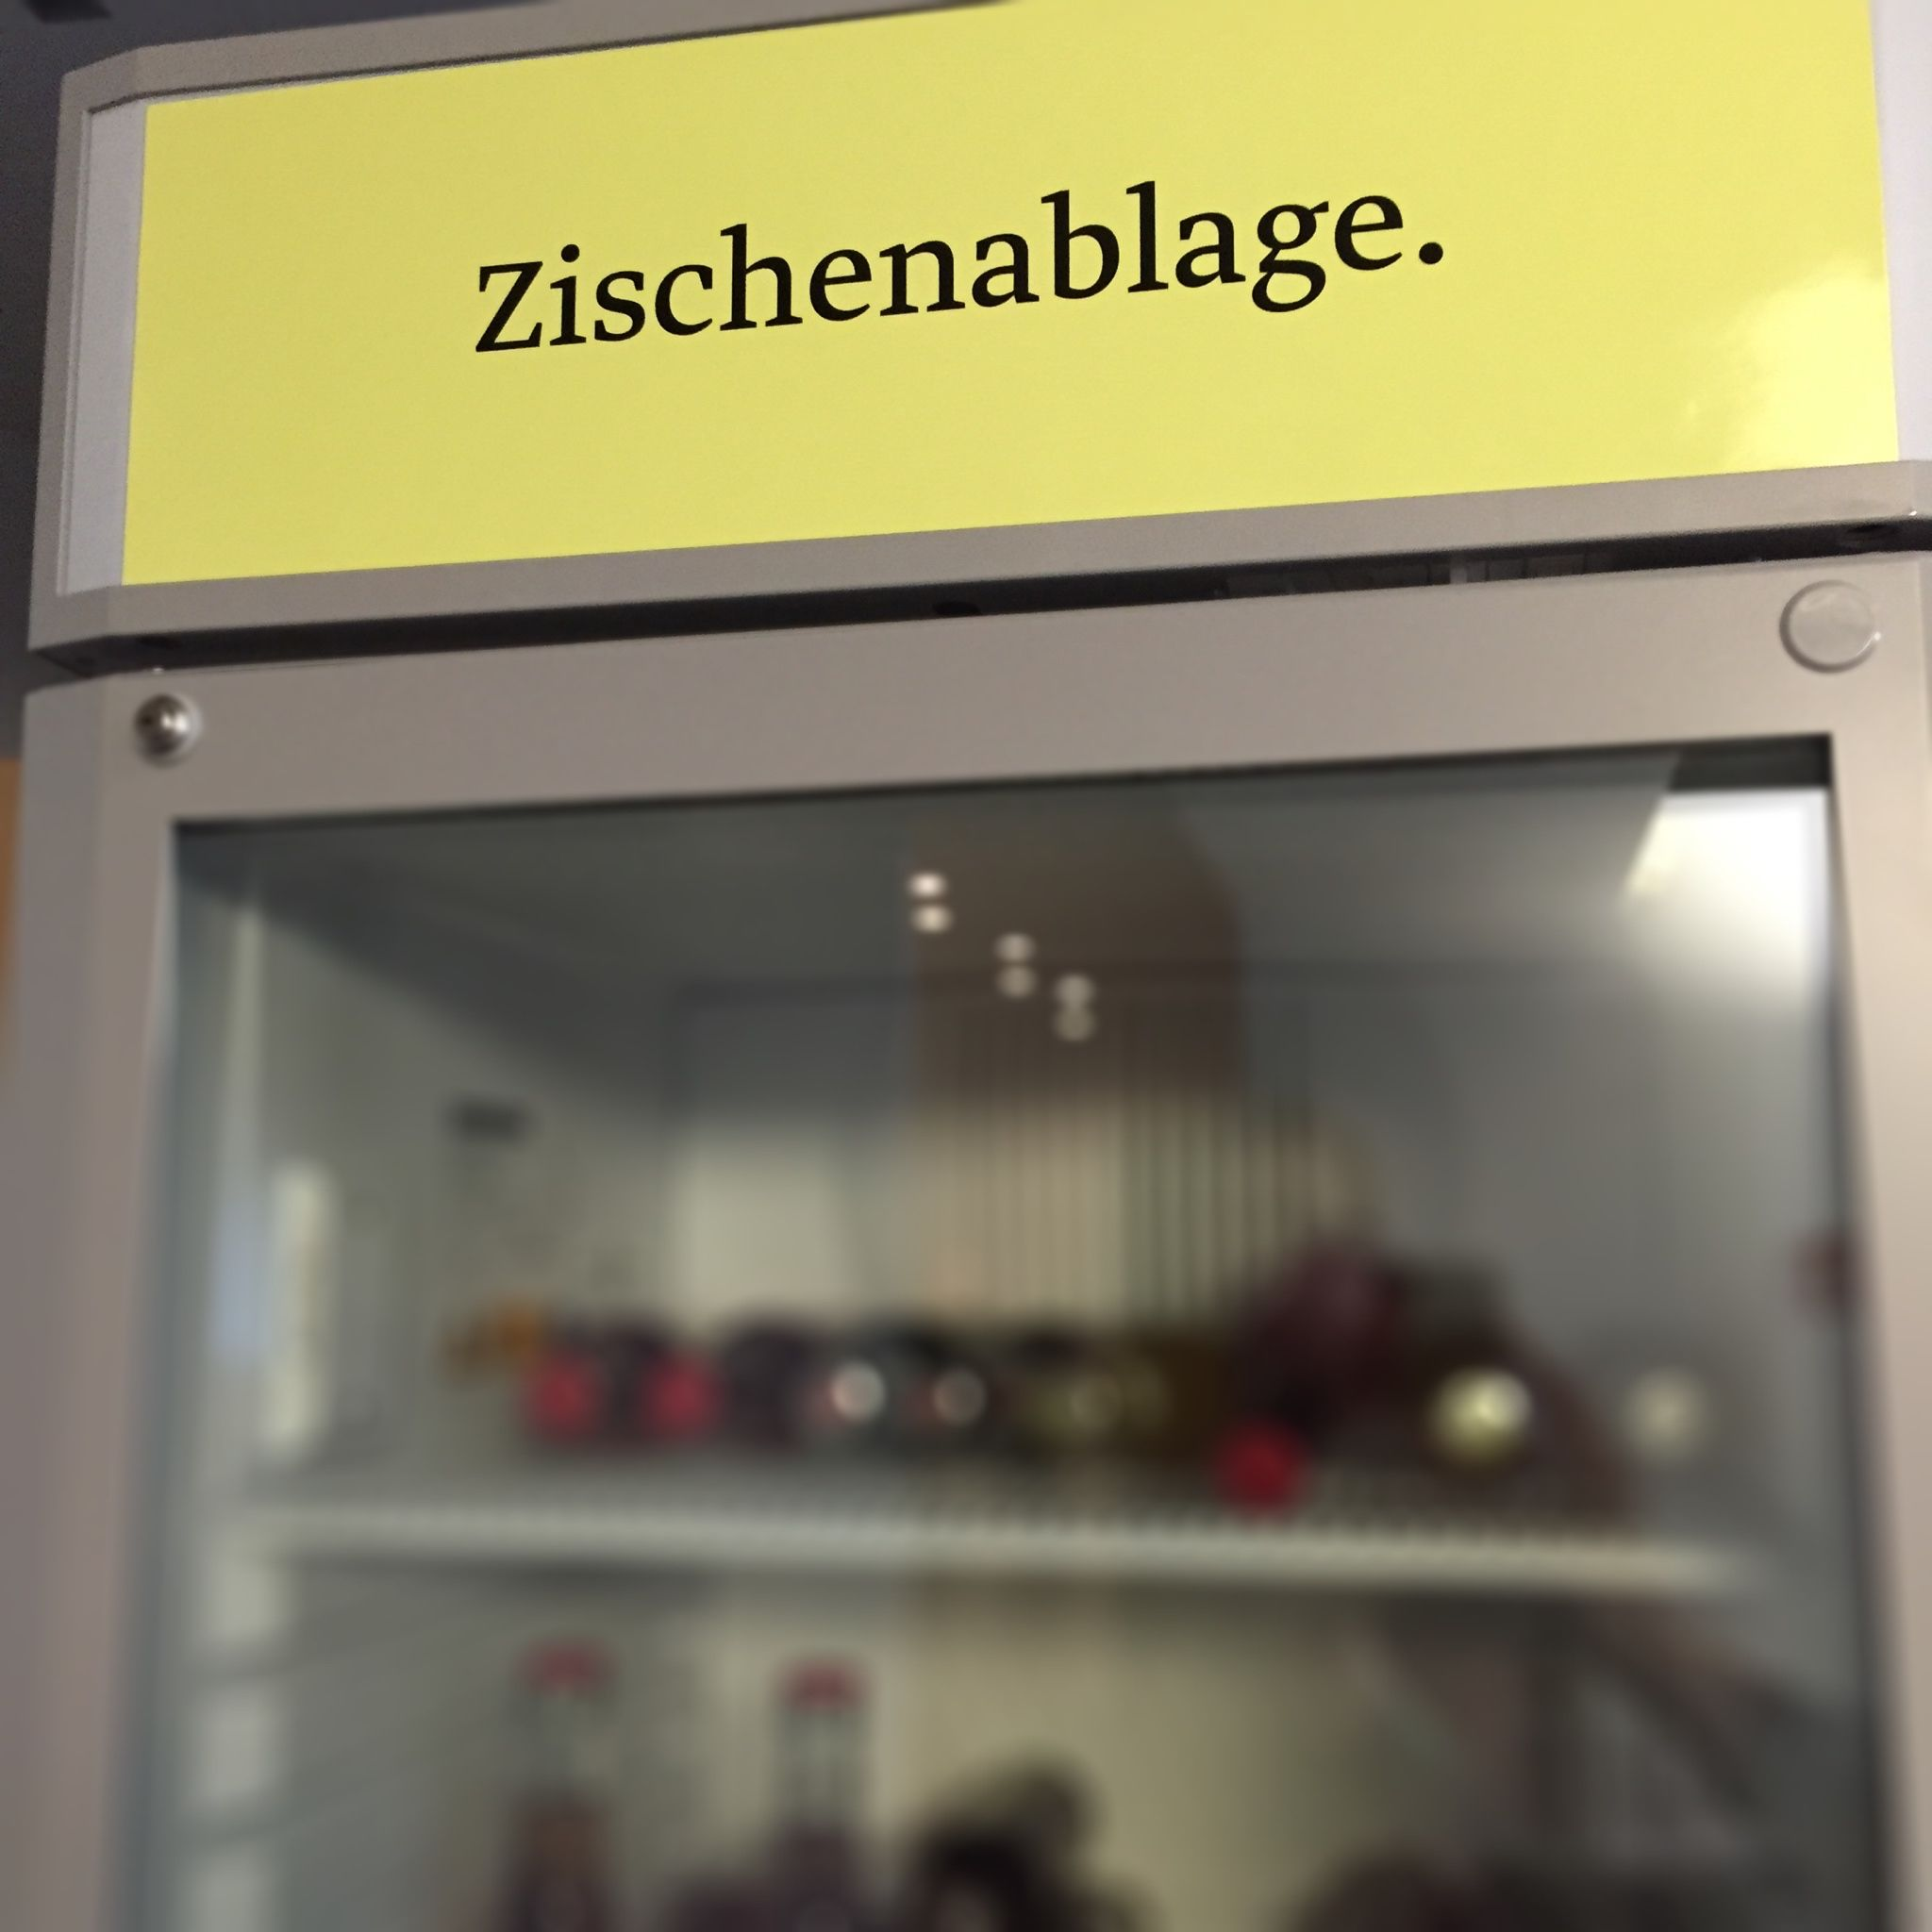 Zischenablage. #FridgeFriday No. 88